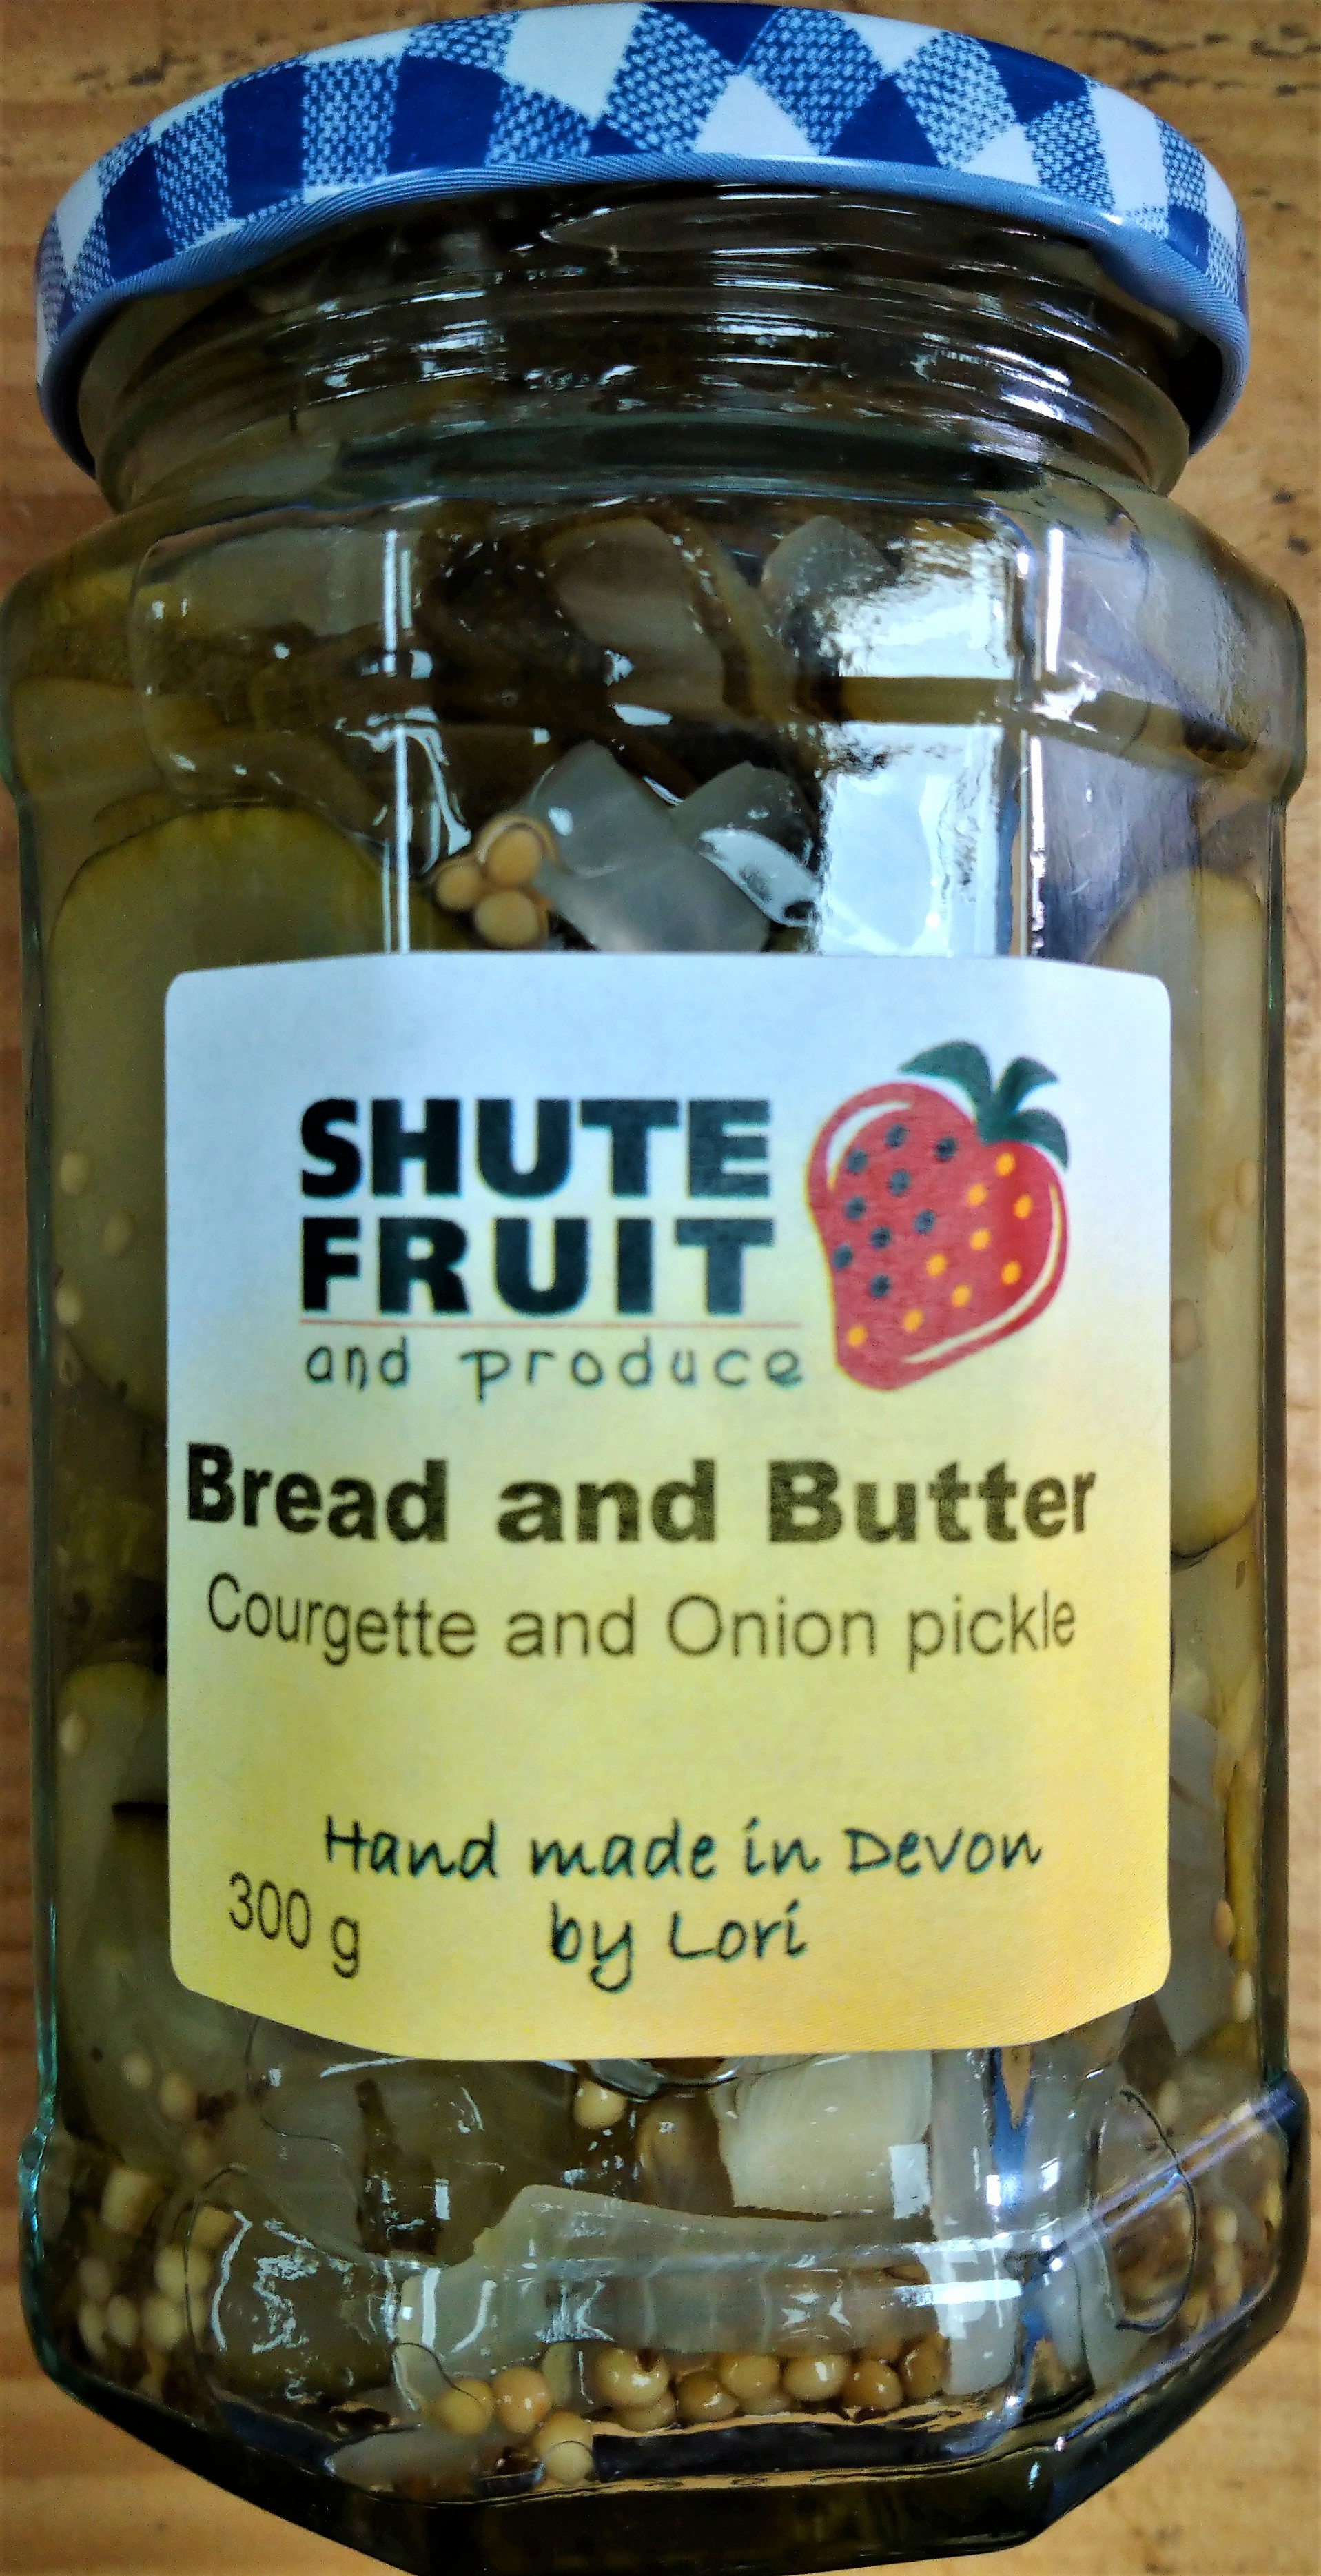 Shute Fruit Chutney